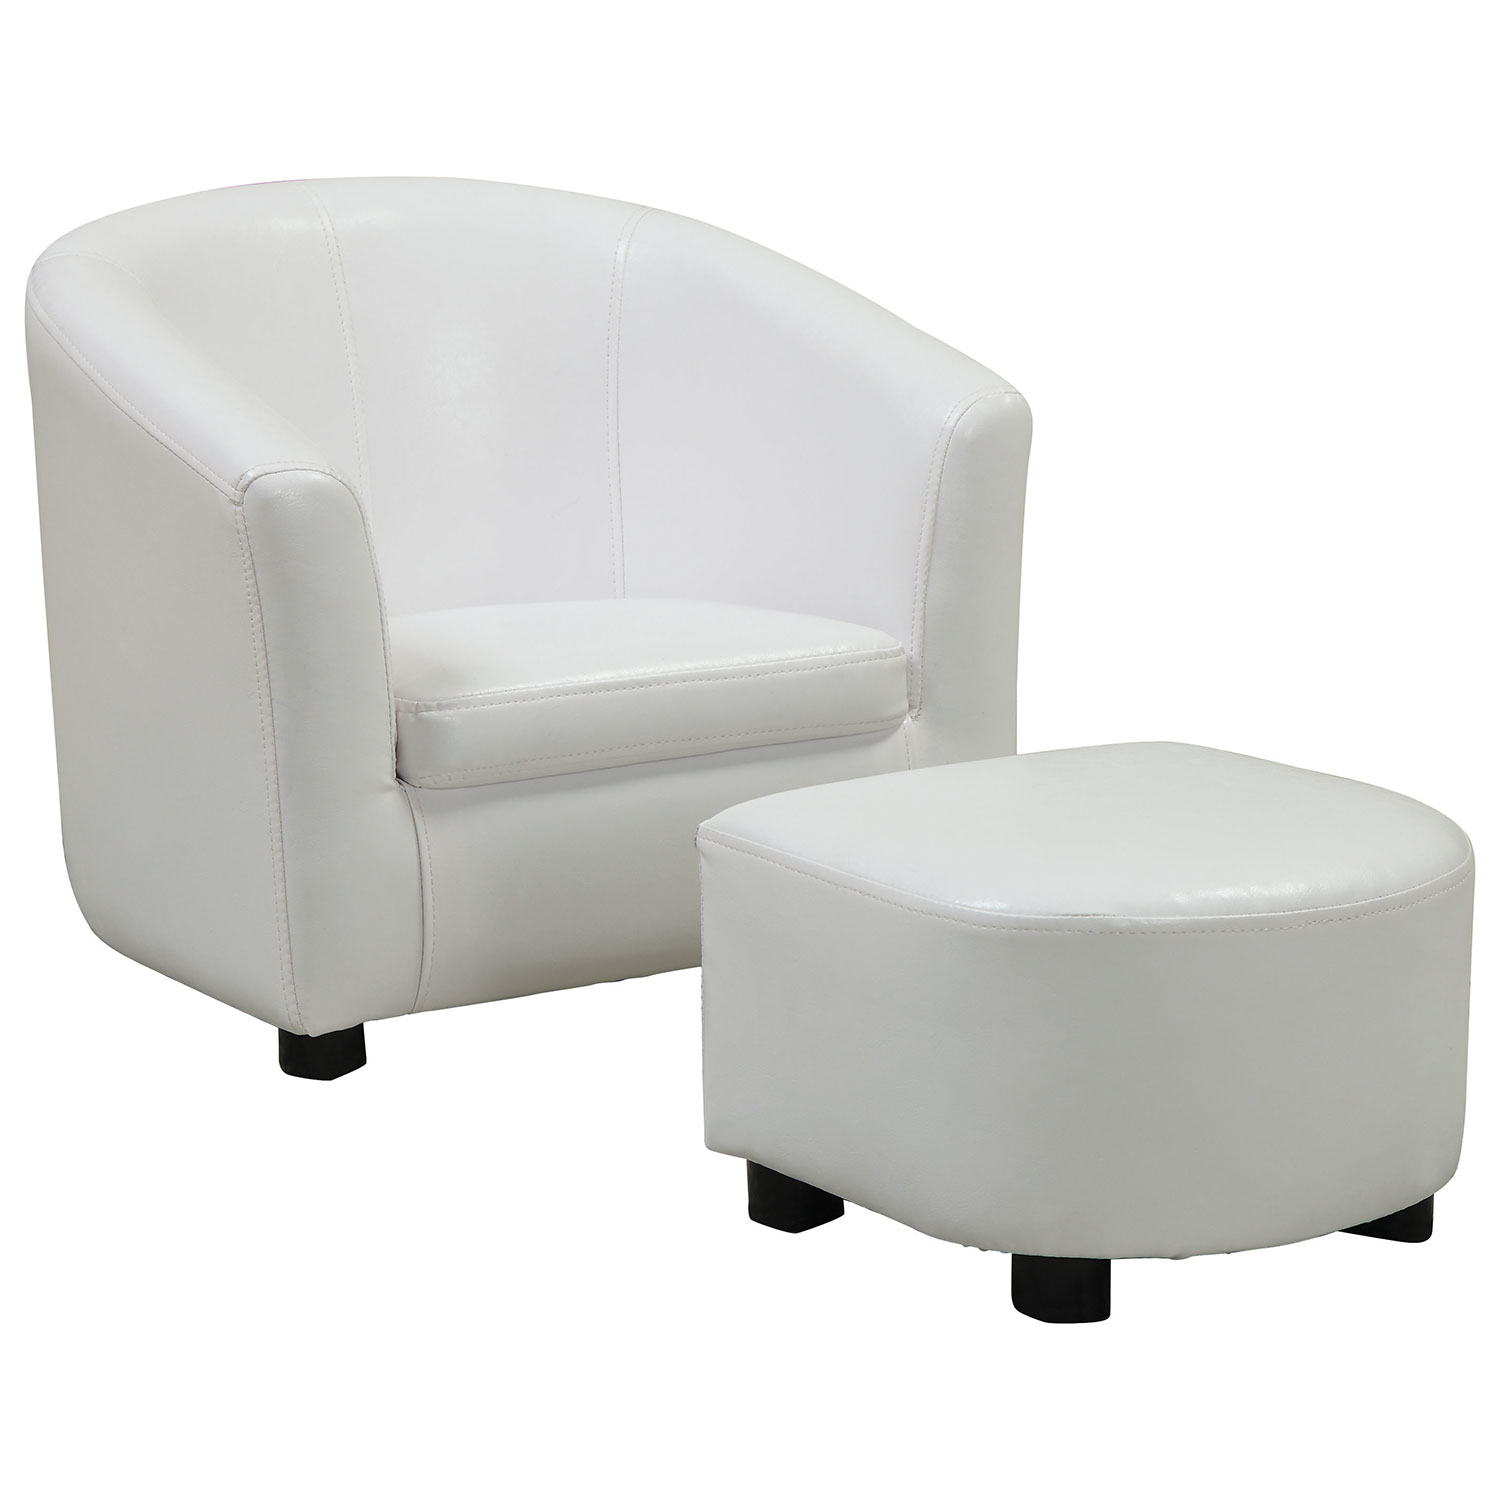 Contemporary Polyurethane Kids Chair And Ottoman Set   White : Accent Chairs    Best Buy Canada